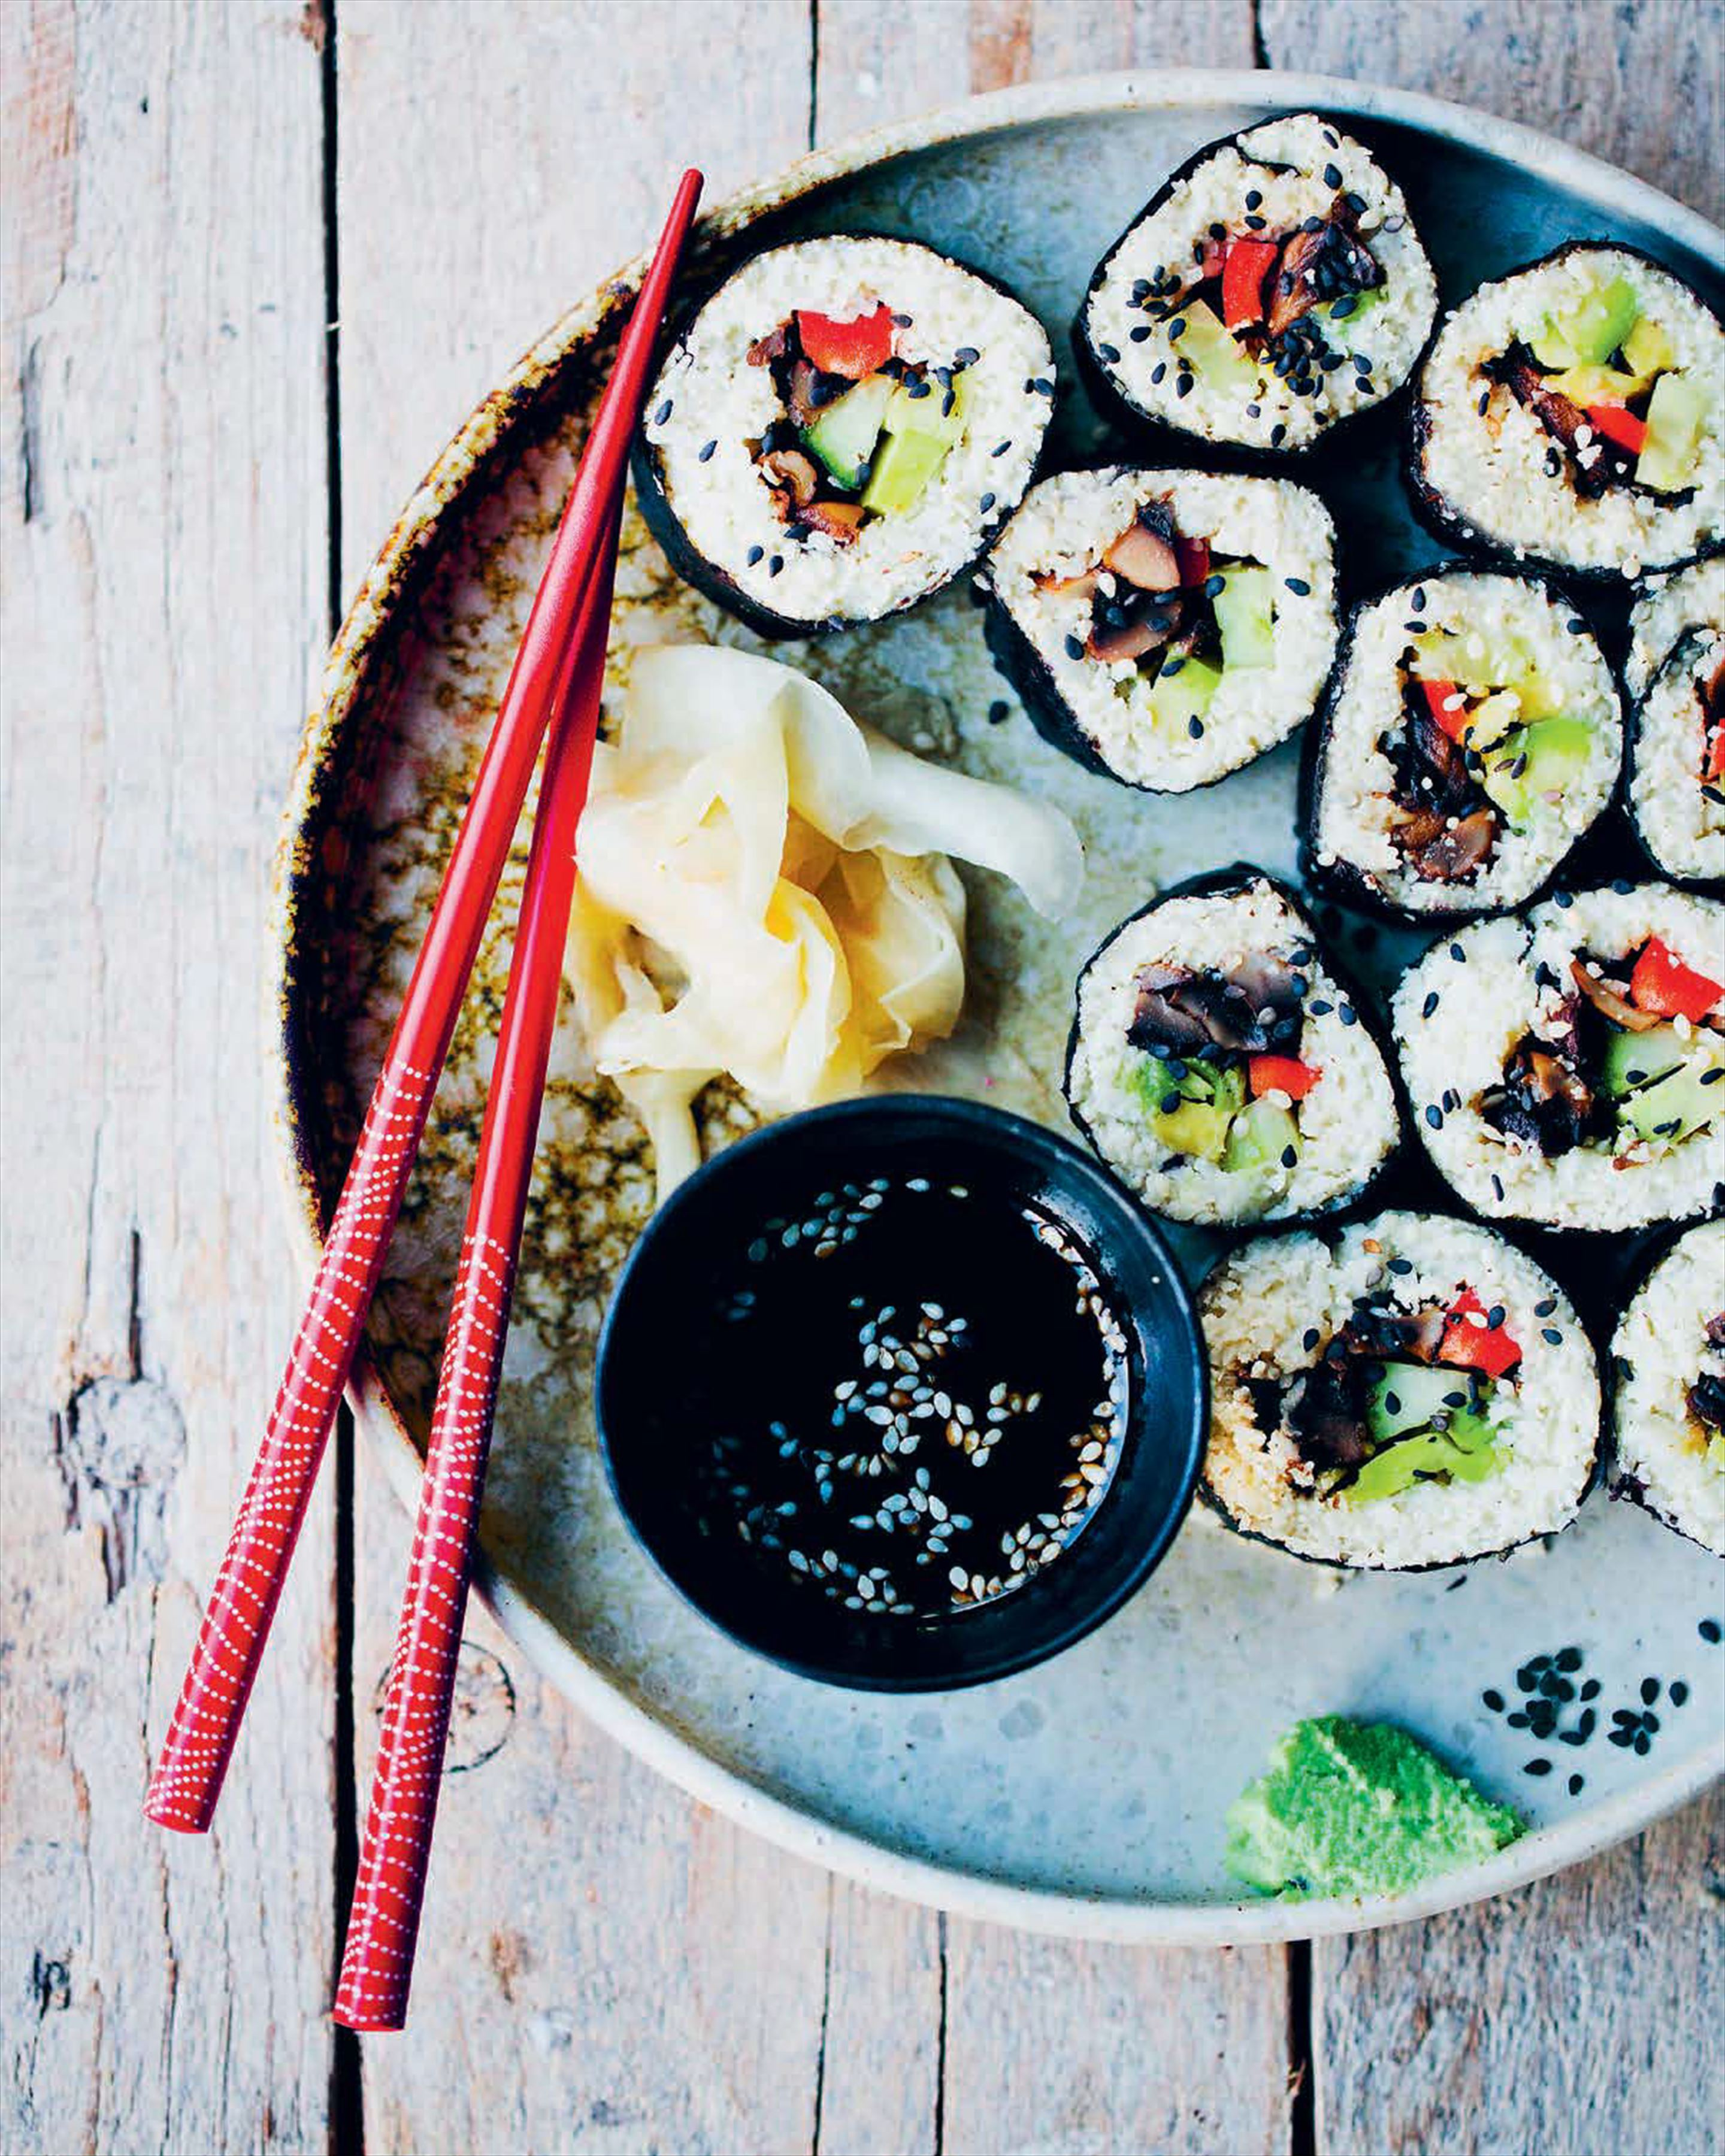 Mushroom and cauliflower 'rice' sushi rolls